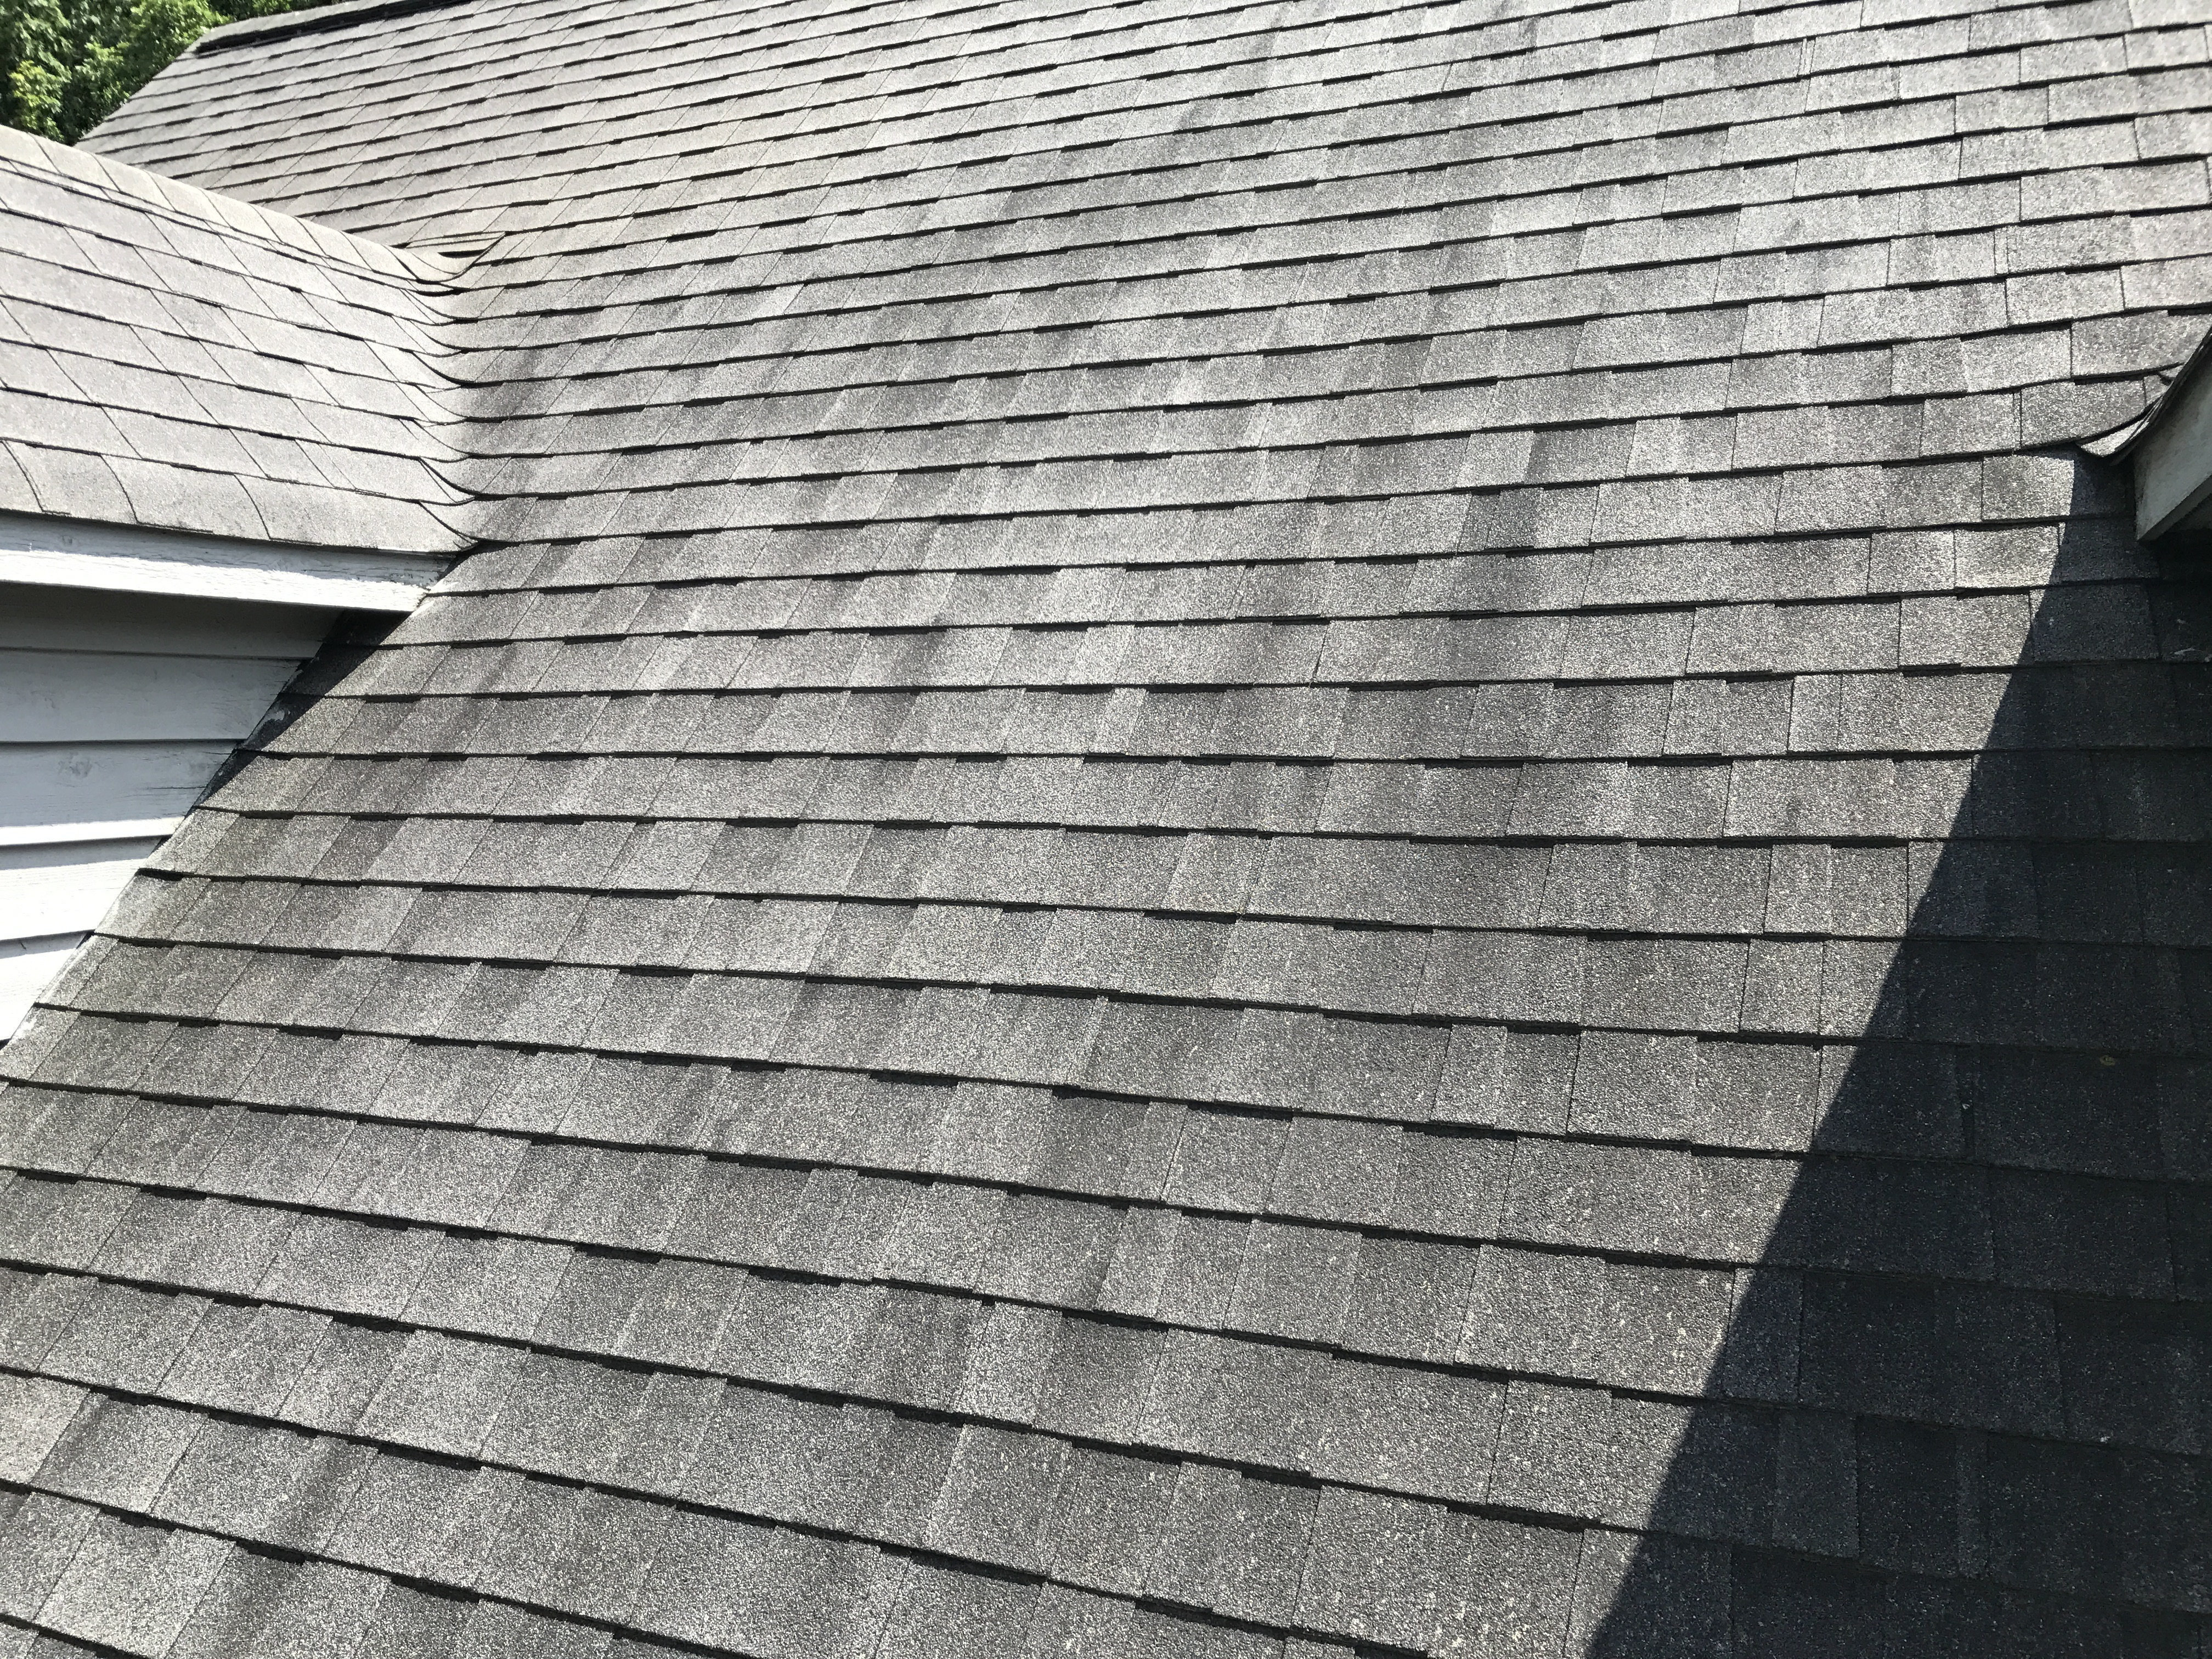 Roof with Black Streaks